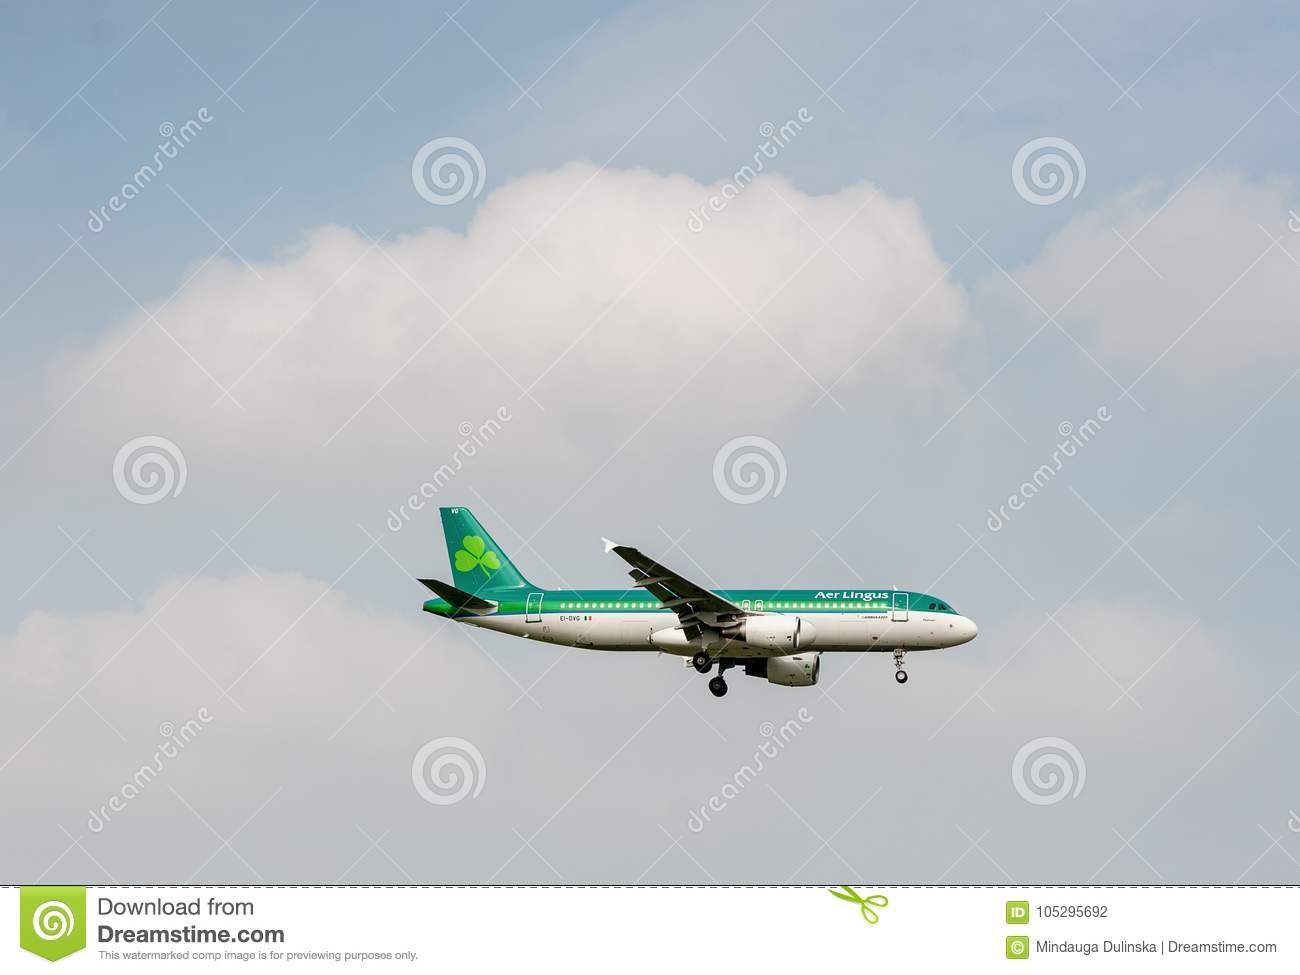 LONDON, ENGLAND - SEPTEMBER 27, 2017: Aer Lingus Airlines Airbus A320 EI-DVG landing in London Heathrow International Airport.